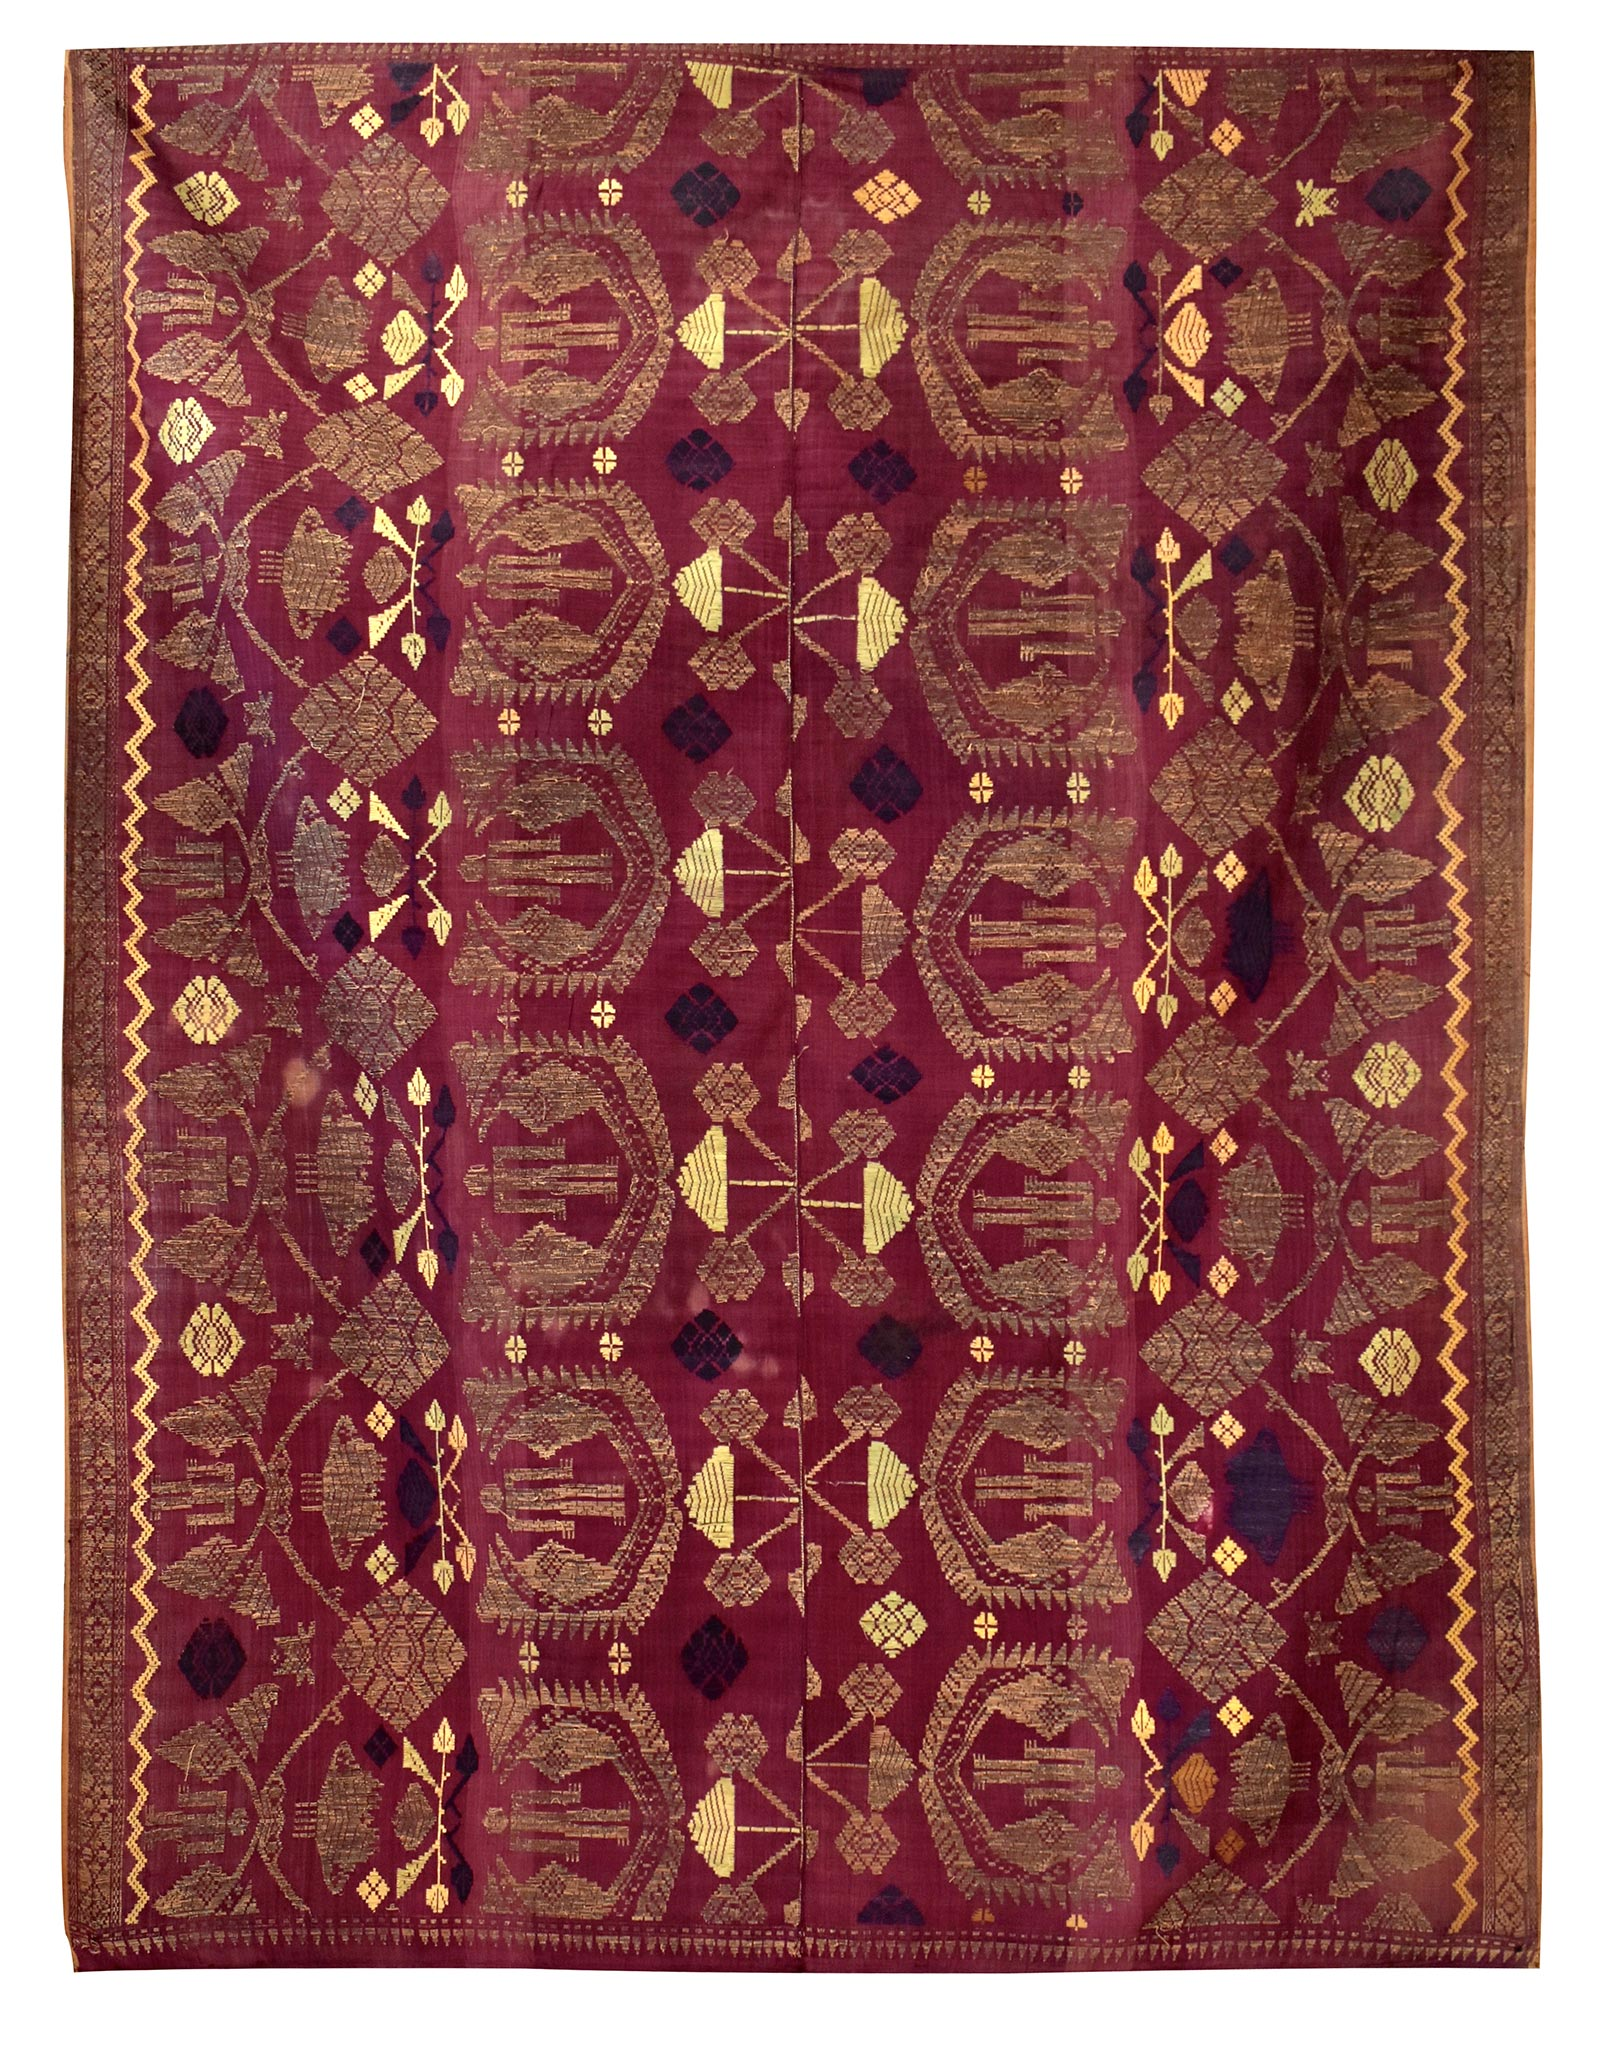 Indonesian Songket